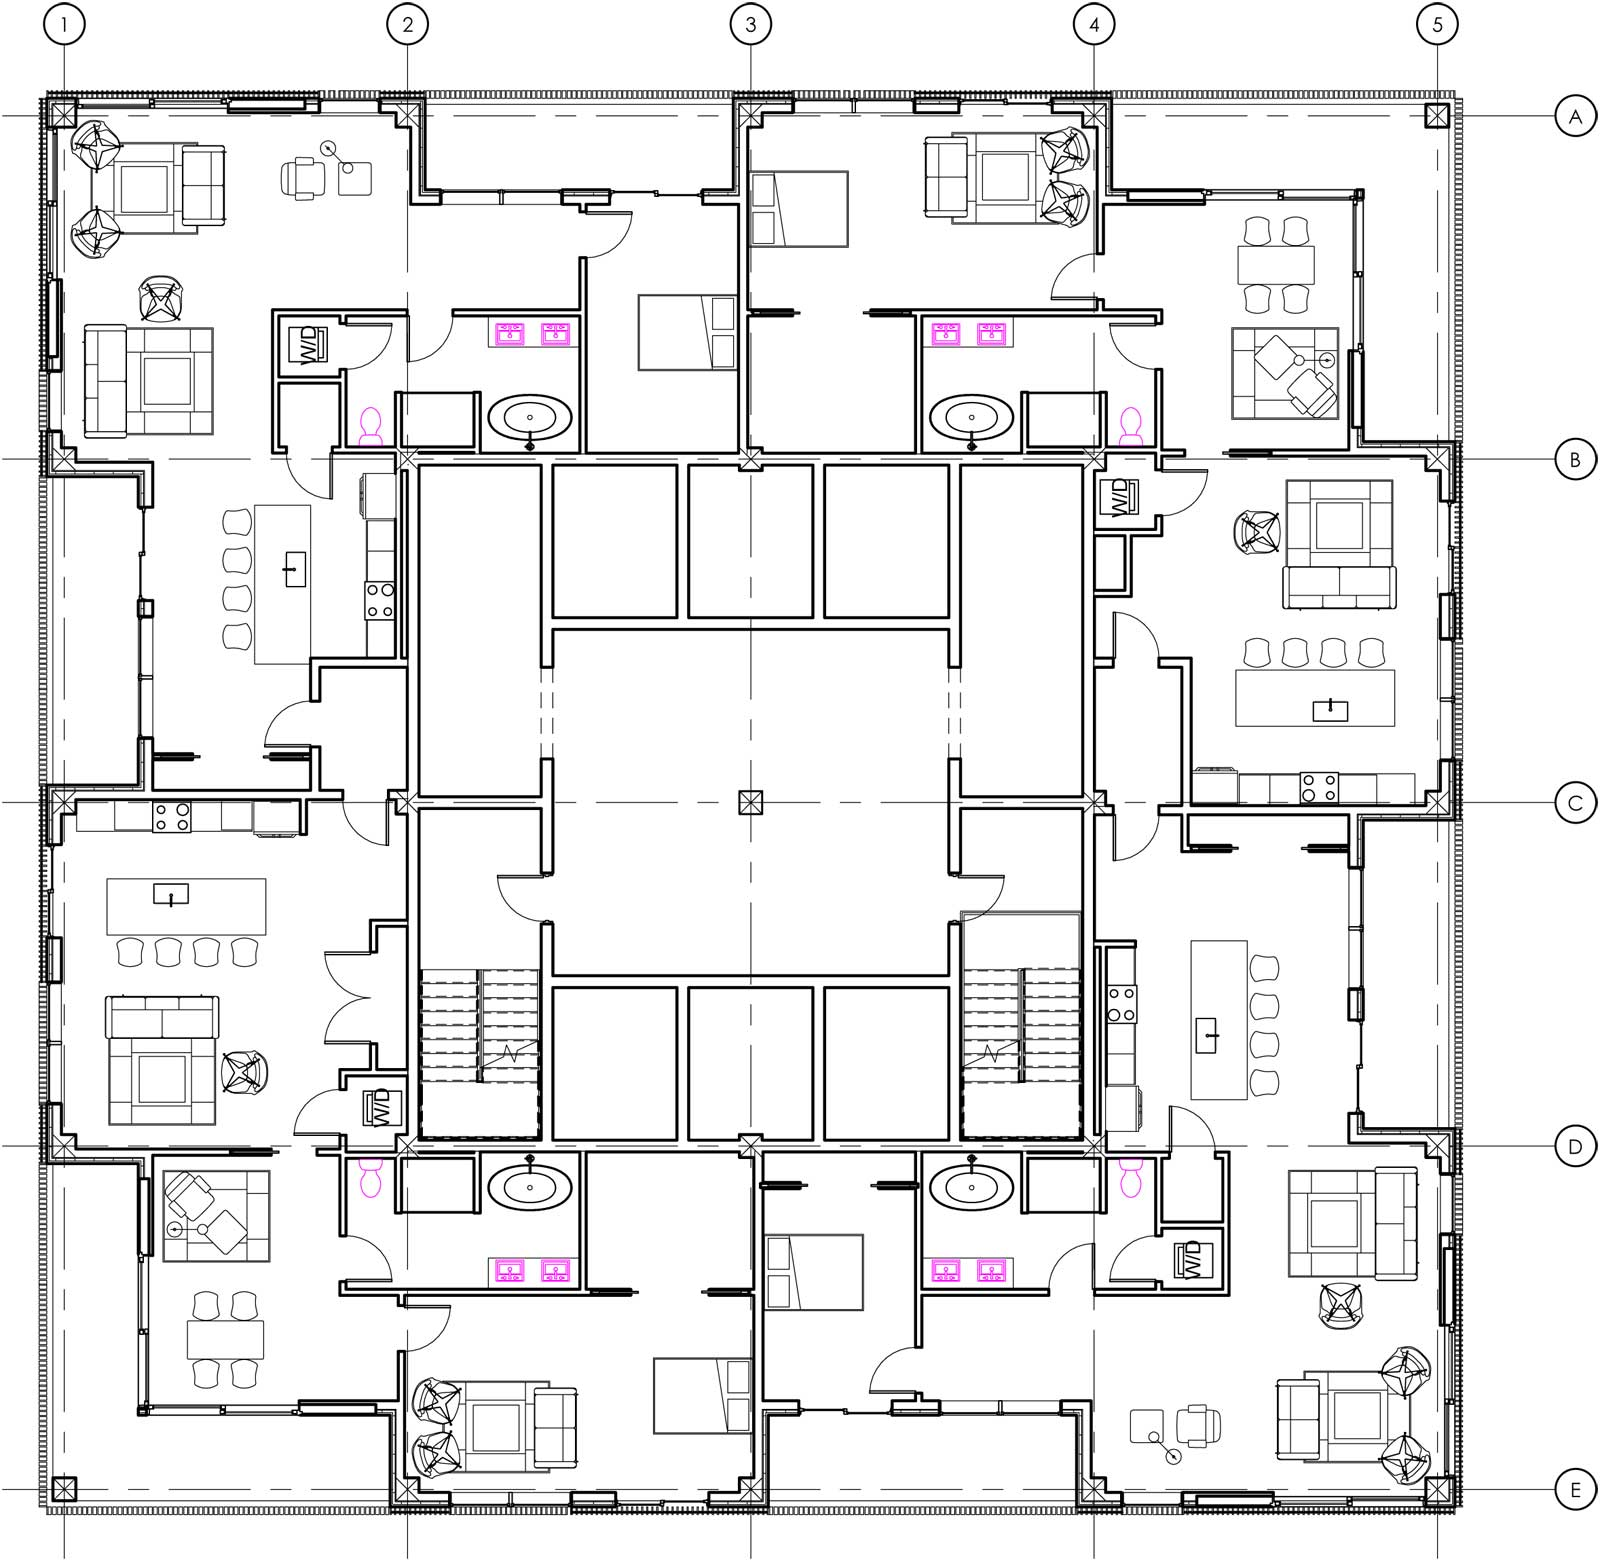 NYC-Timber-Residential-Skyscraper-One-Bedroom-Unit-Floor-Plan-Type-B.jpg